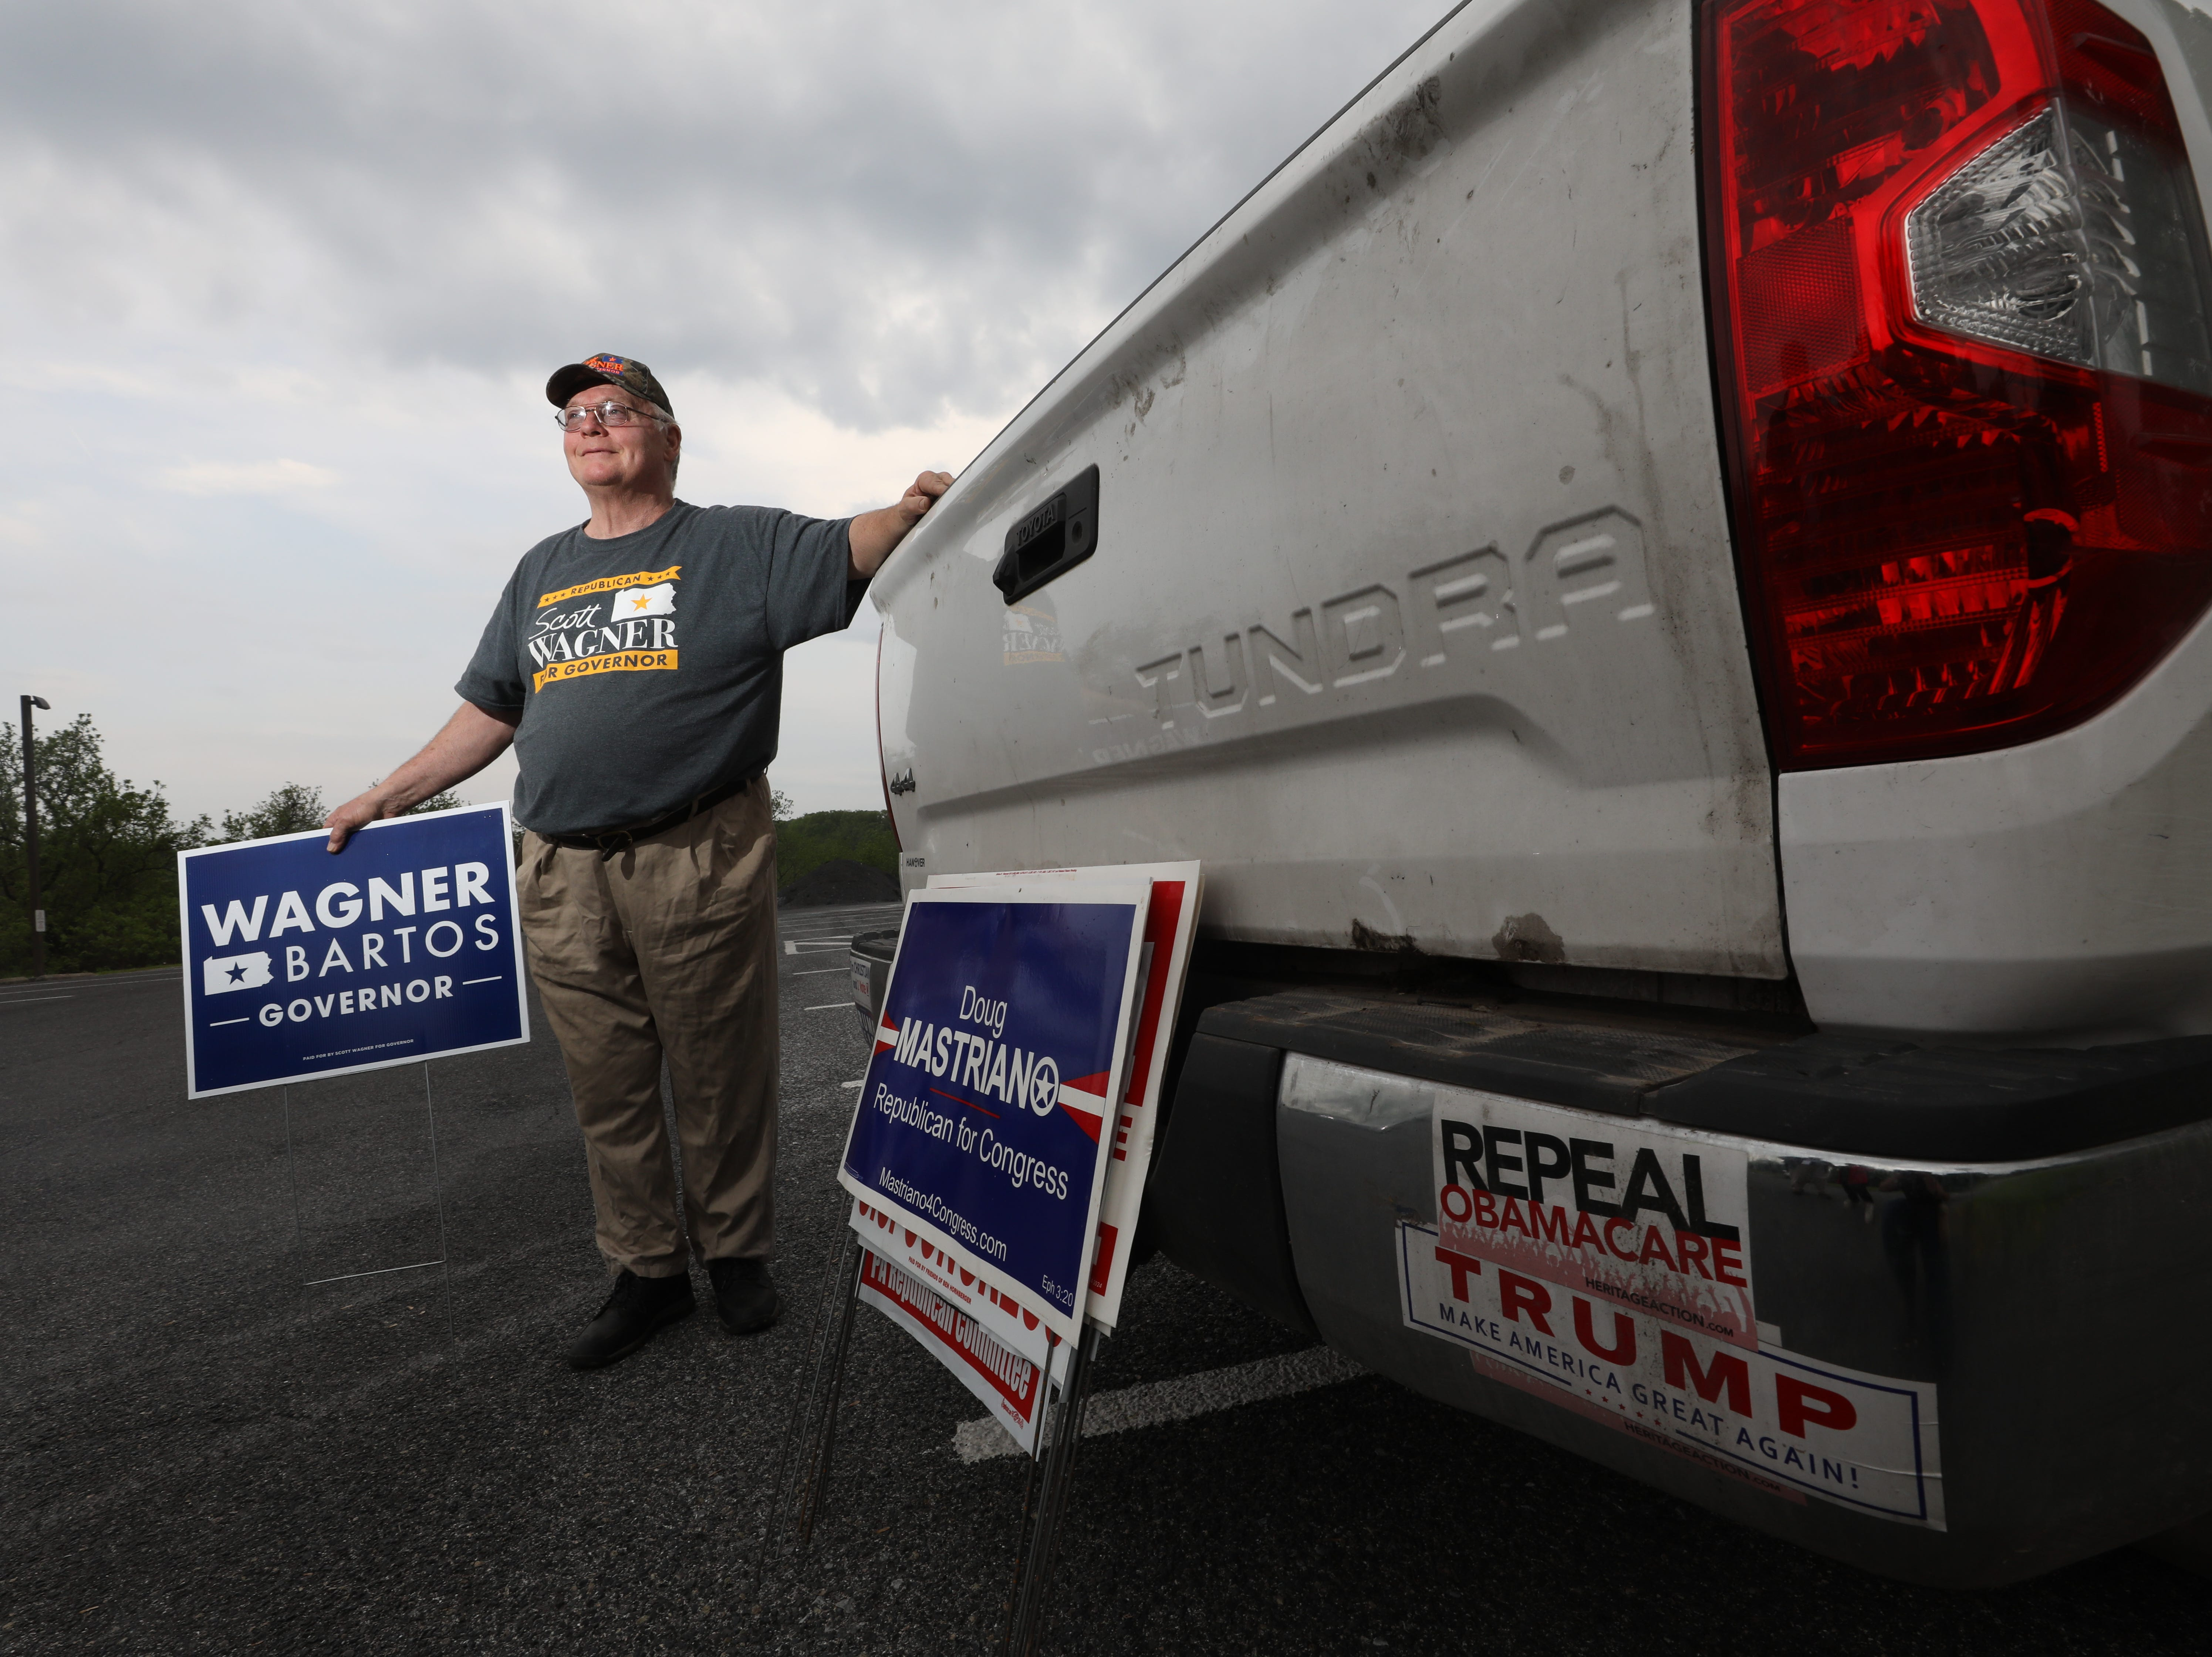 Donald Trump supporter John Longanecker spent his evening putting out campaign signs the day before the Pennsylvania Primary.